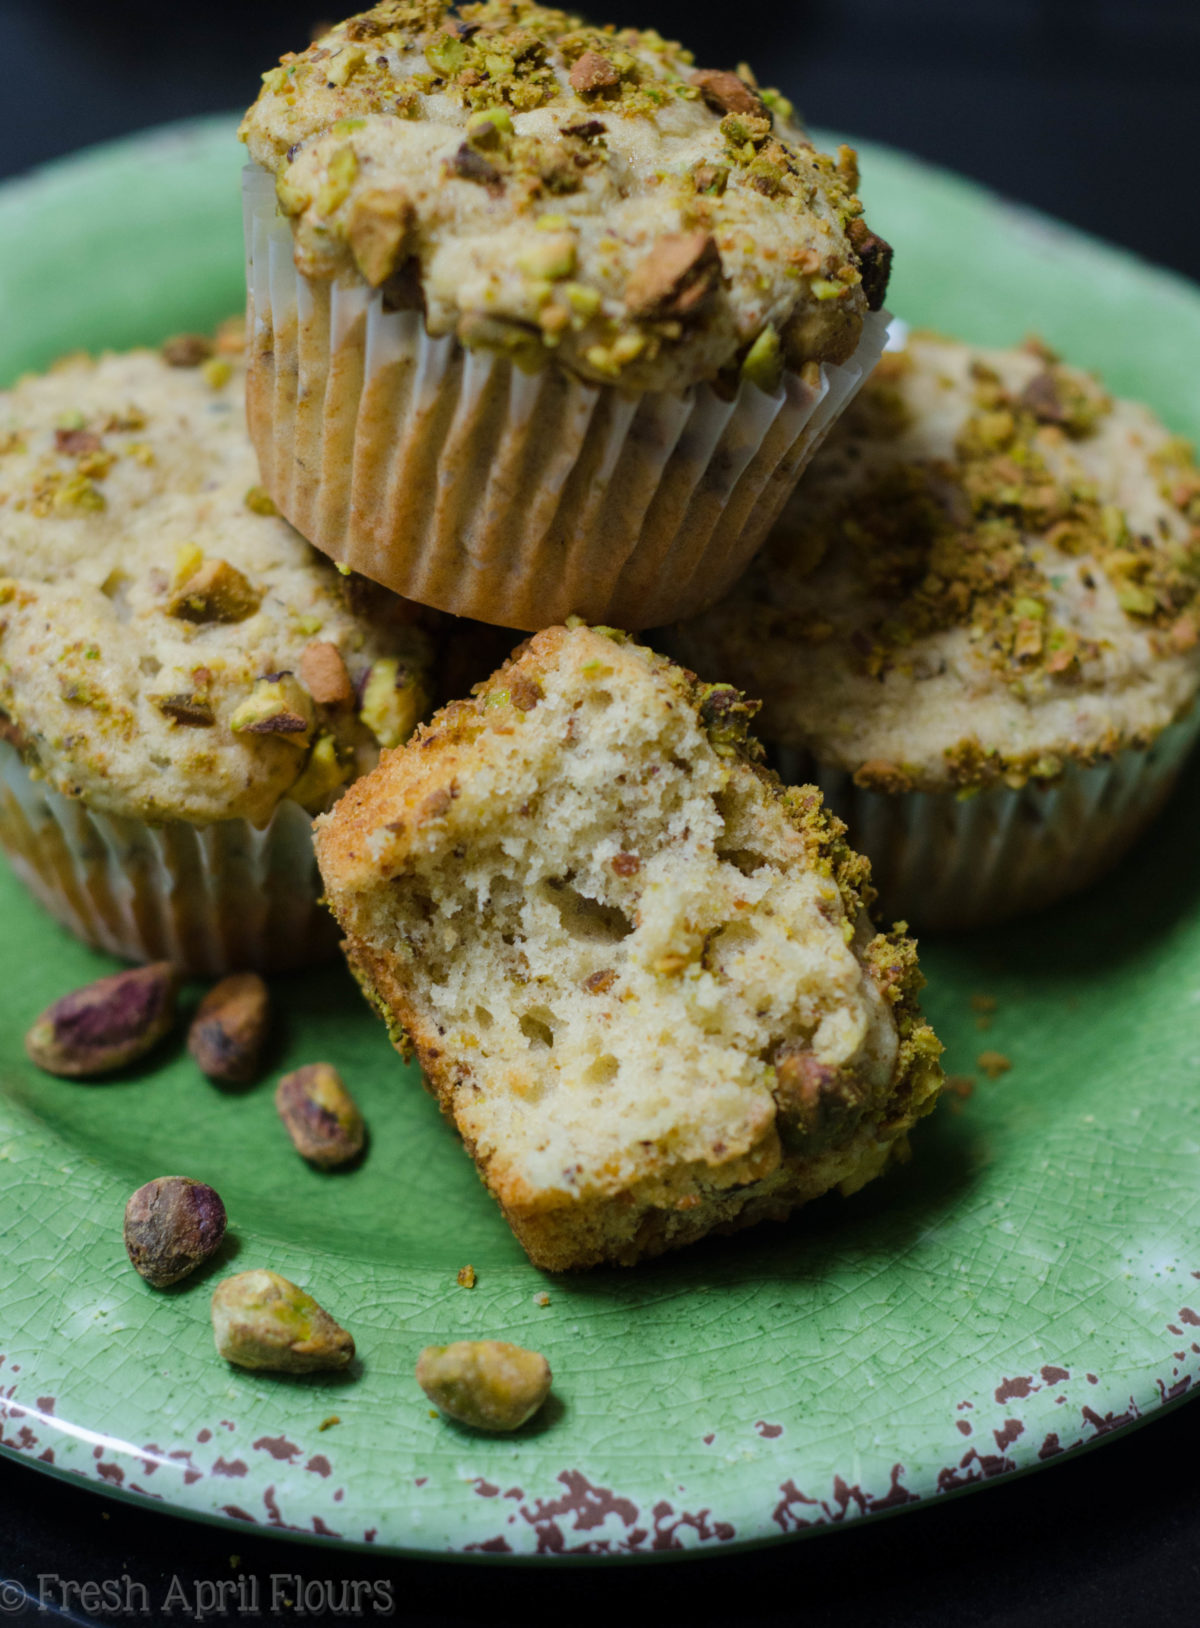 pistachio muffins on a plate and one has a bite taken out of it